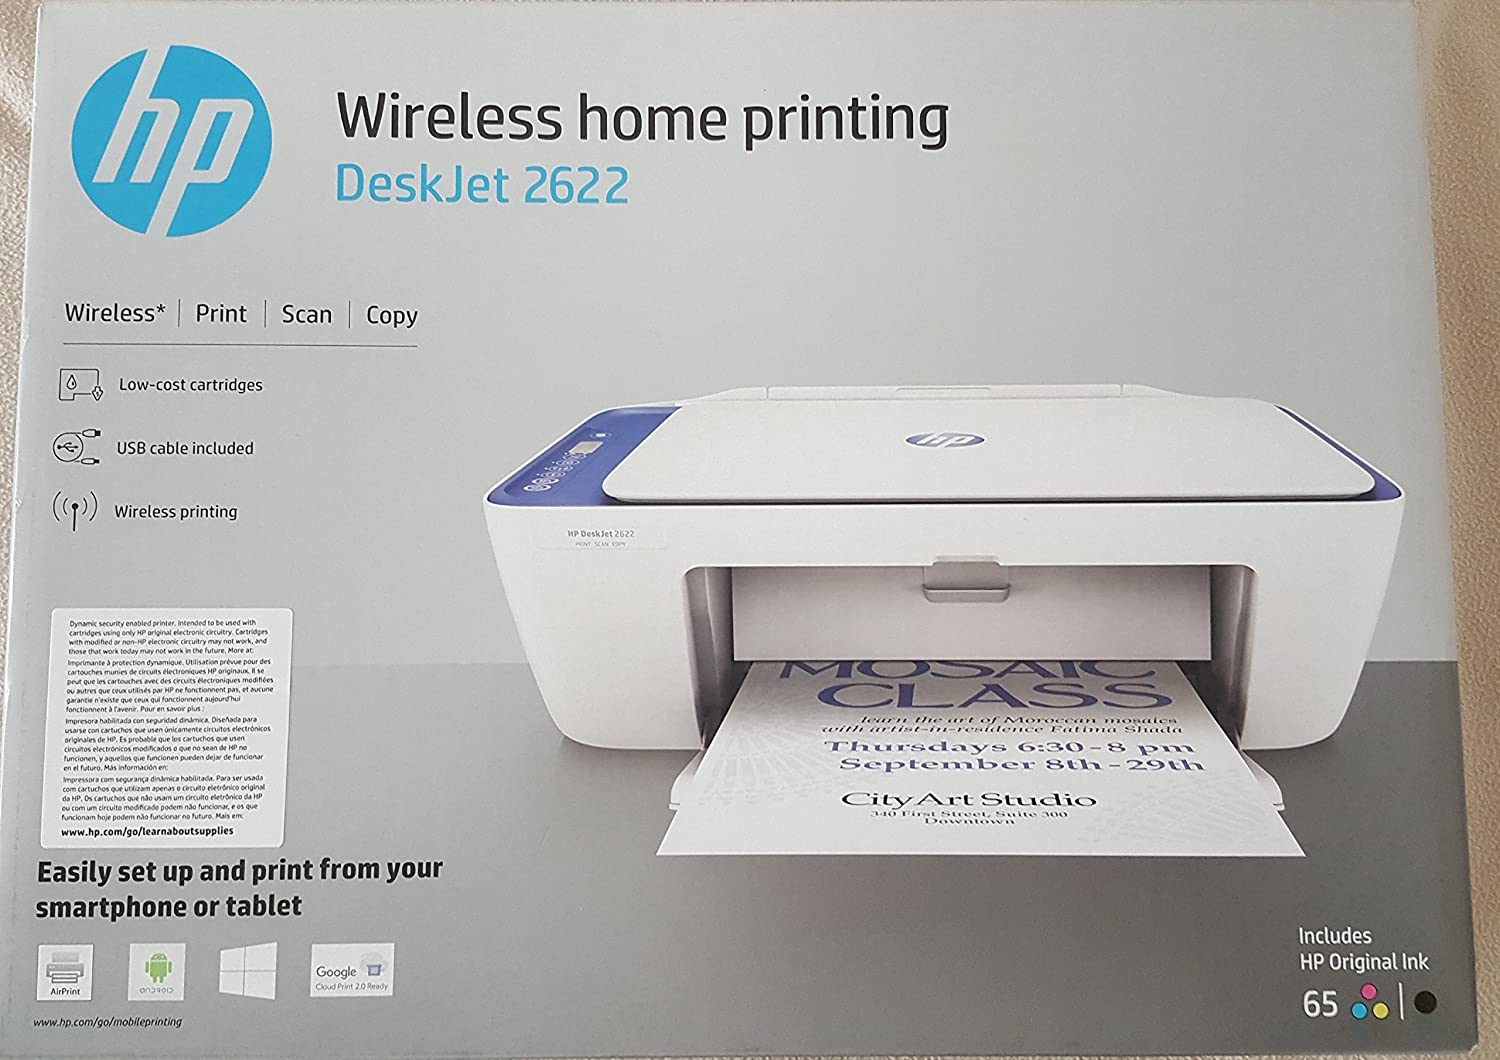 HP Deskjet 2622 All-in-one Printer Wireless Print Scan Copy, USB Cable Included